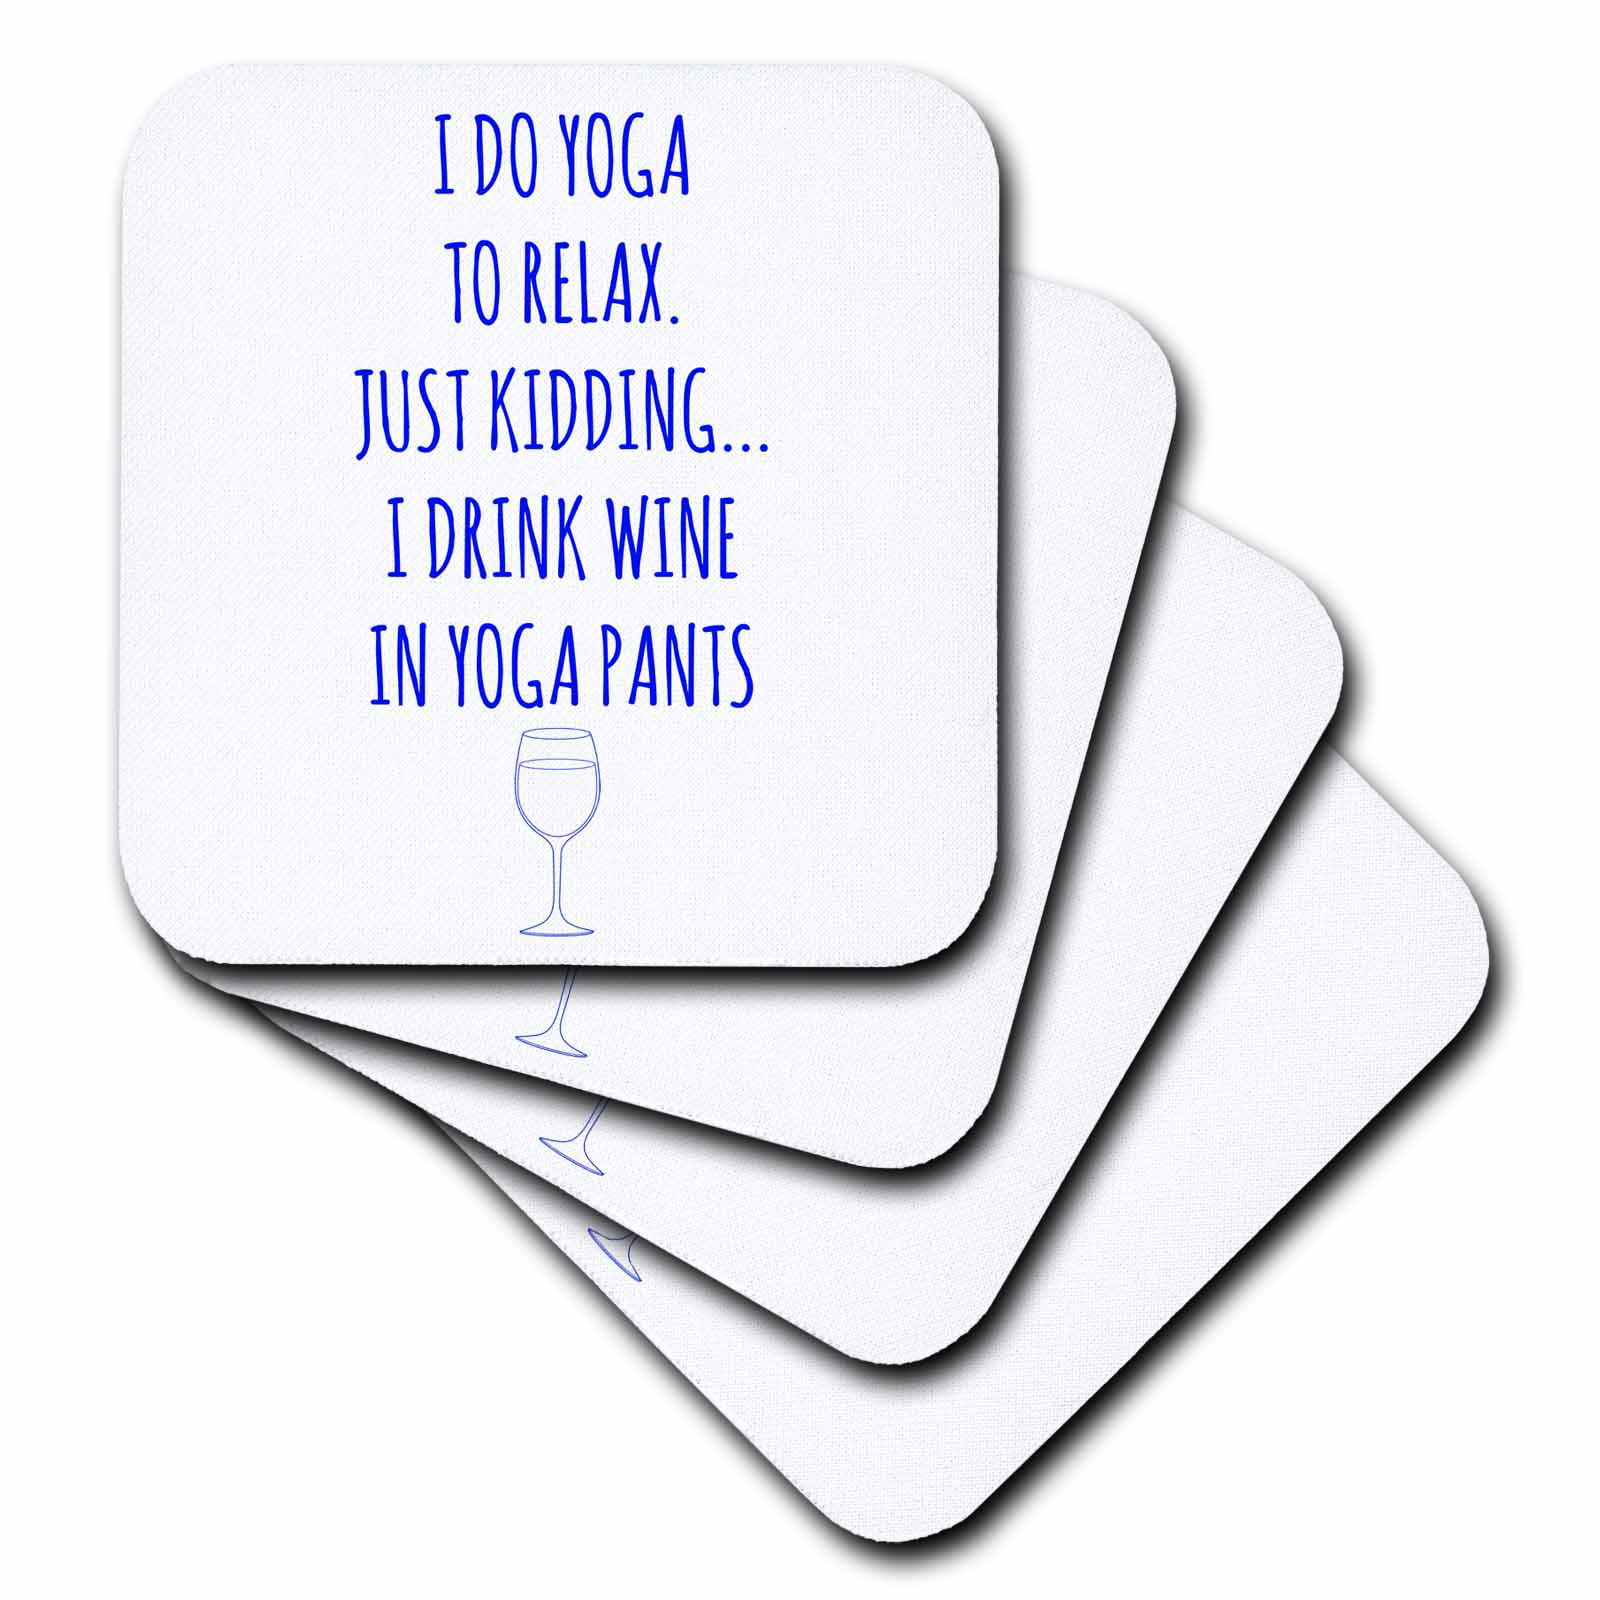 3dRose I do yoga to relax, just kidding I drink wine in yoga pants blue, Soft Coasters, set of 4 by 3dRose